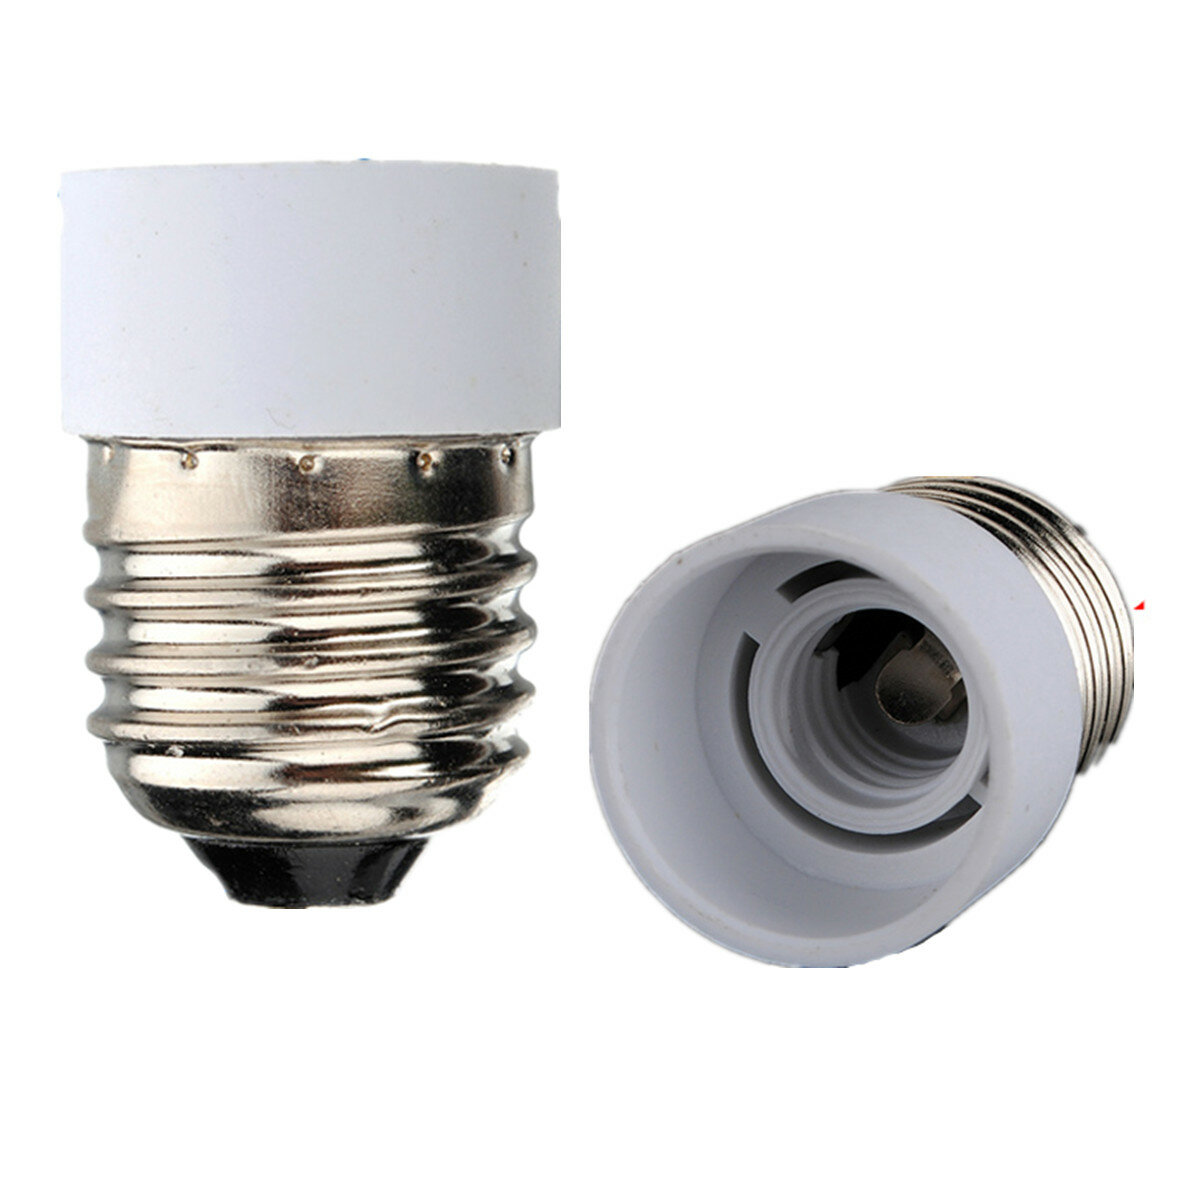 E14 E27 Adapter E27 To E14 Fitting Light Lamp Bulb Adapter Converter